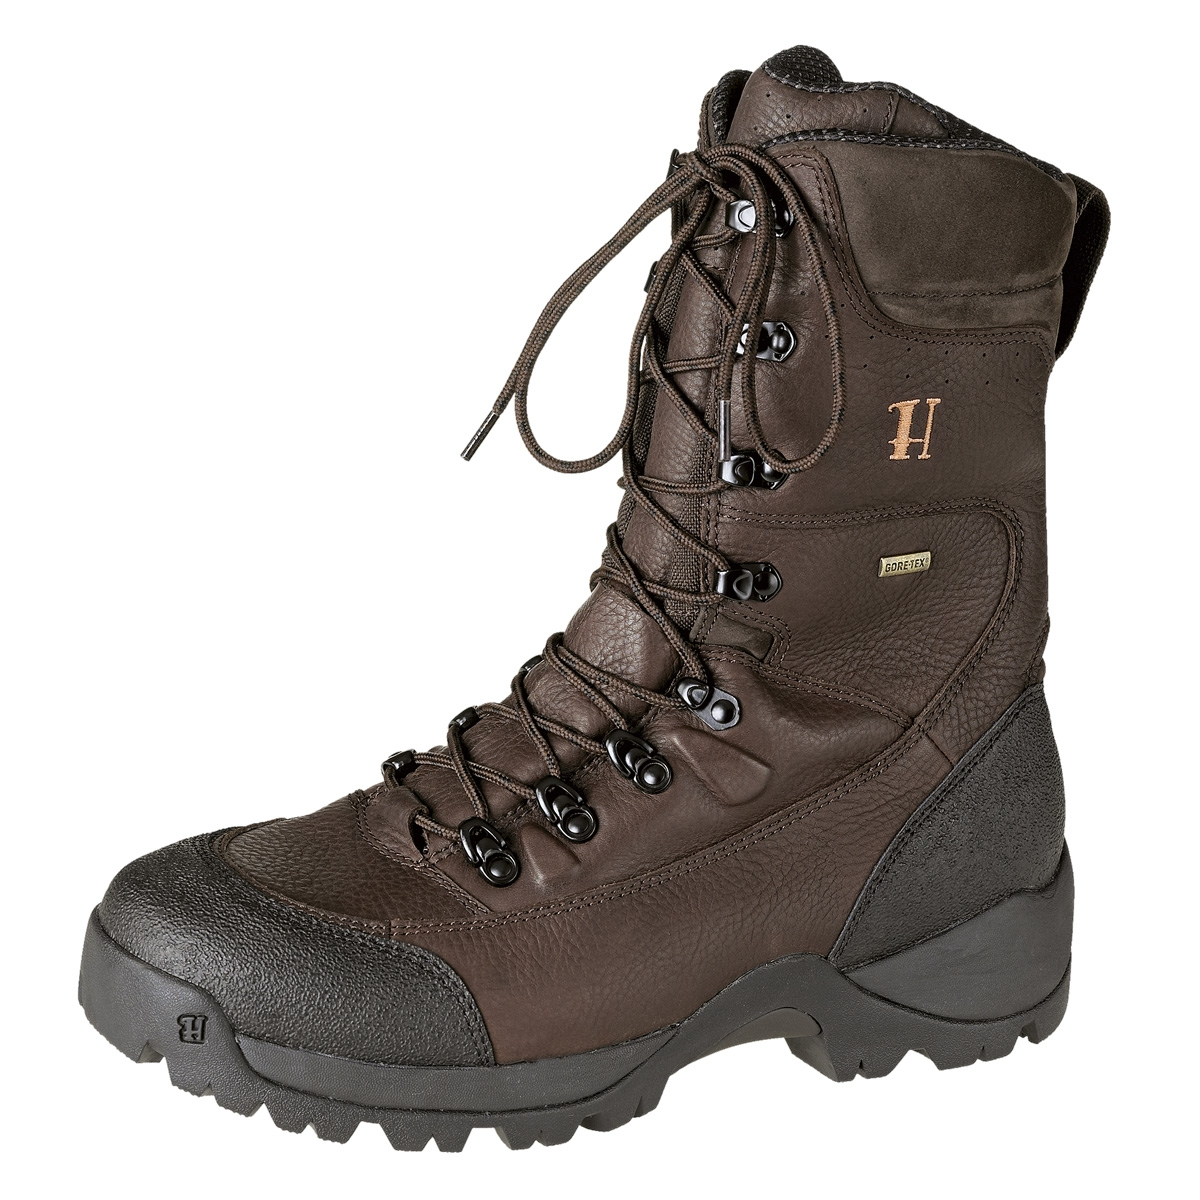 Image of Harkila Big Game GTX 10 Inch L Insulated Walking Boot (Men's) -